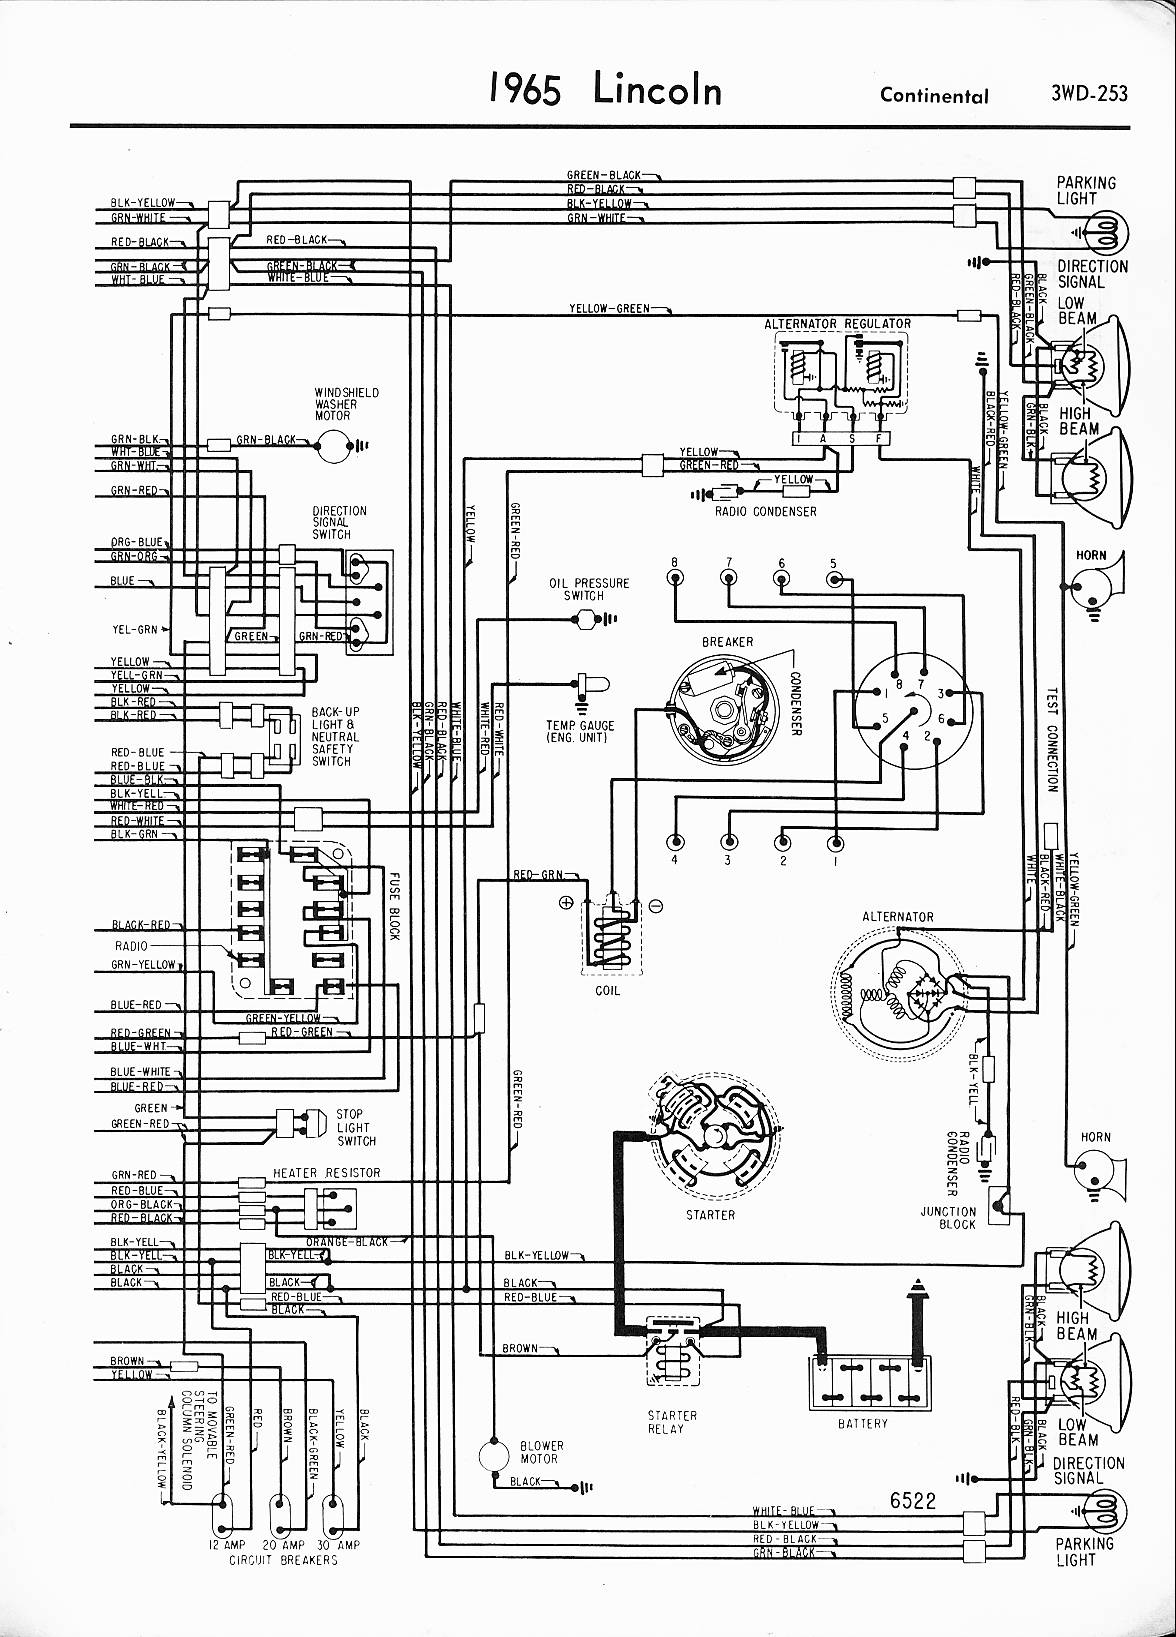 99 Lincoln Wiring Diagram Data Automotive Relay Library Diagrams 1989 1991 Continental